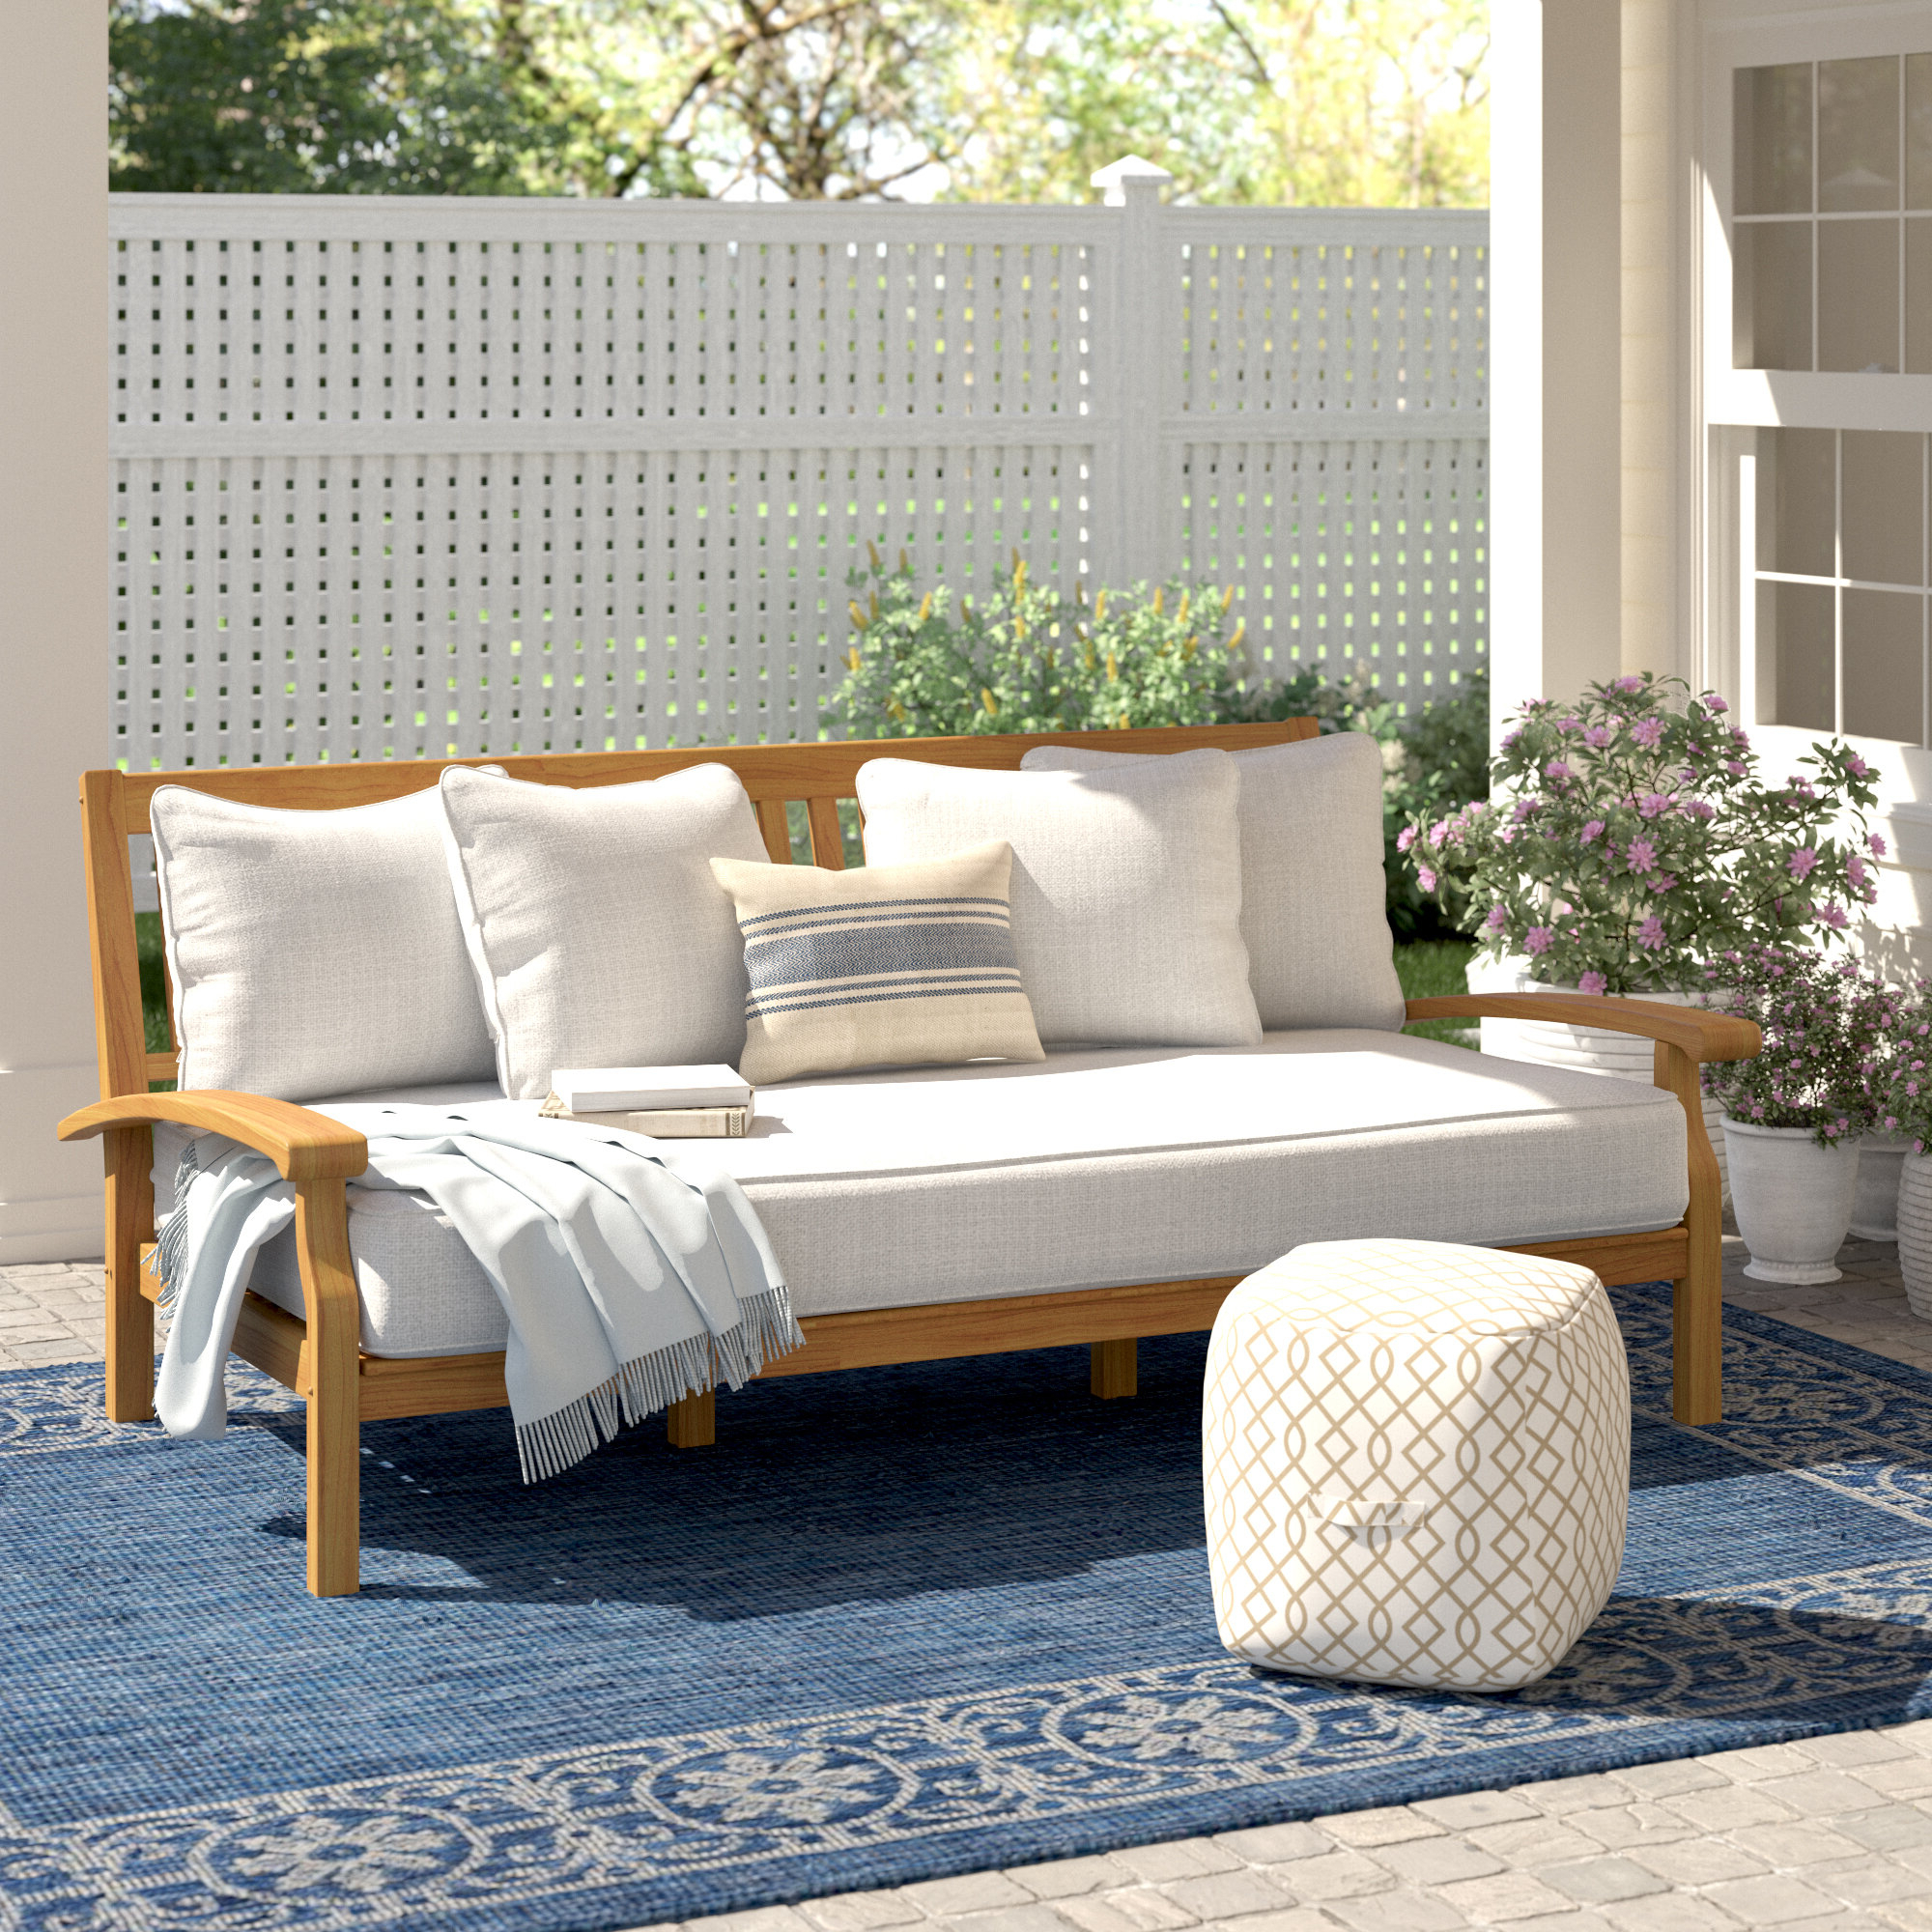 Latest Summerton Teak Patio Daybed With Cushion Regarding Bodine Patio Daybeds With Cushions (Gallery 15 of 25)